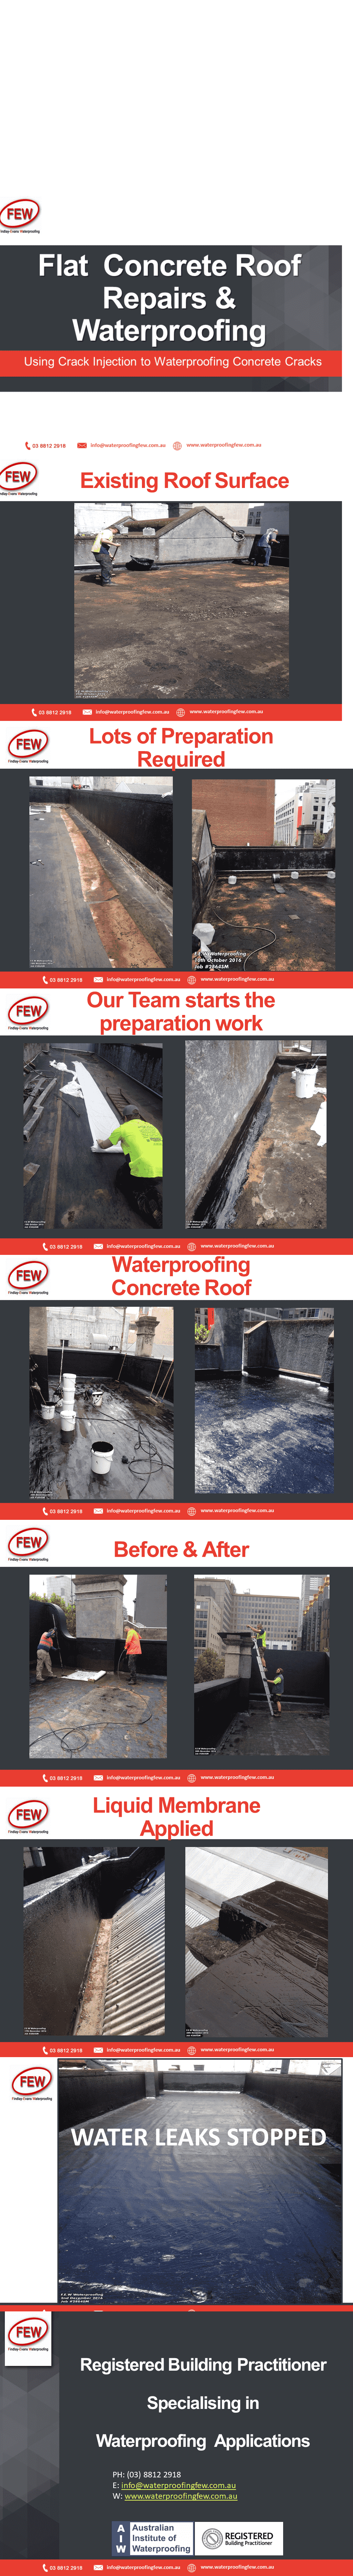 Waterproofing Membrane to Repair Leaking Flat Concrete Roof Slab-Melbourne CBD-infographic_optimized (2)